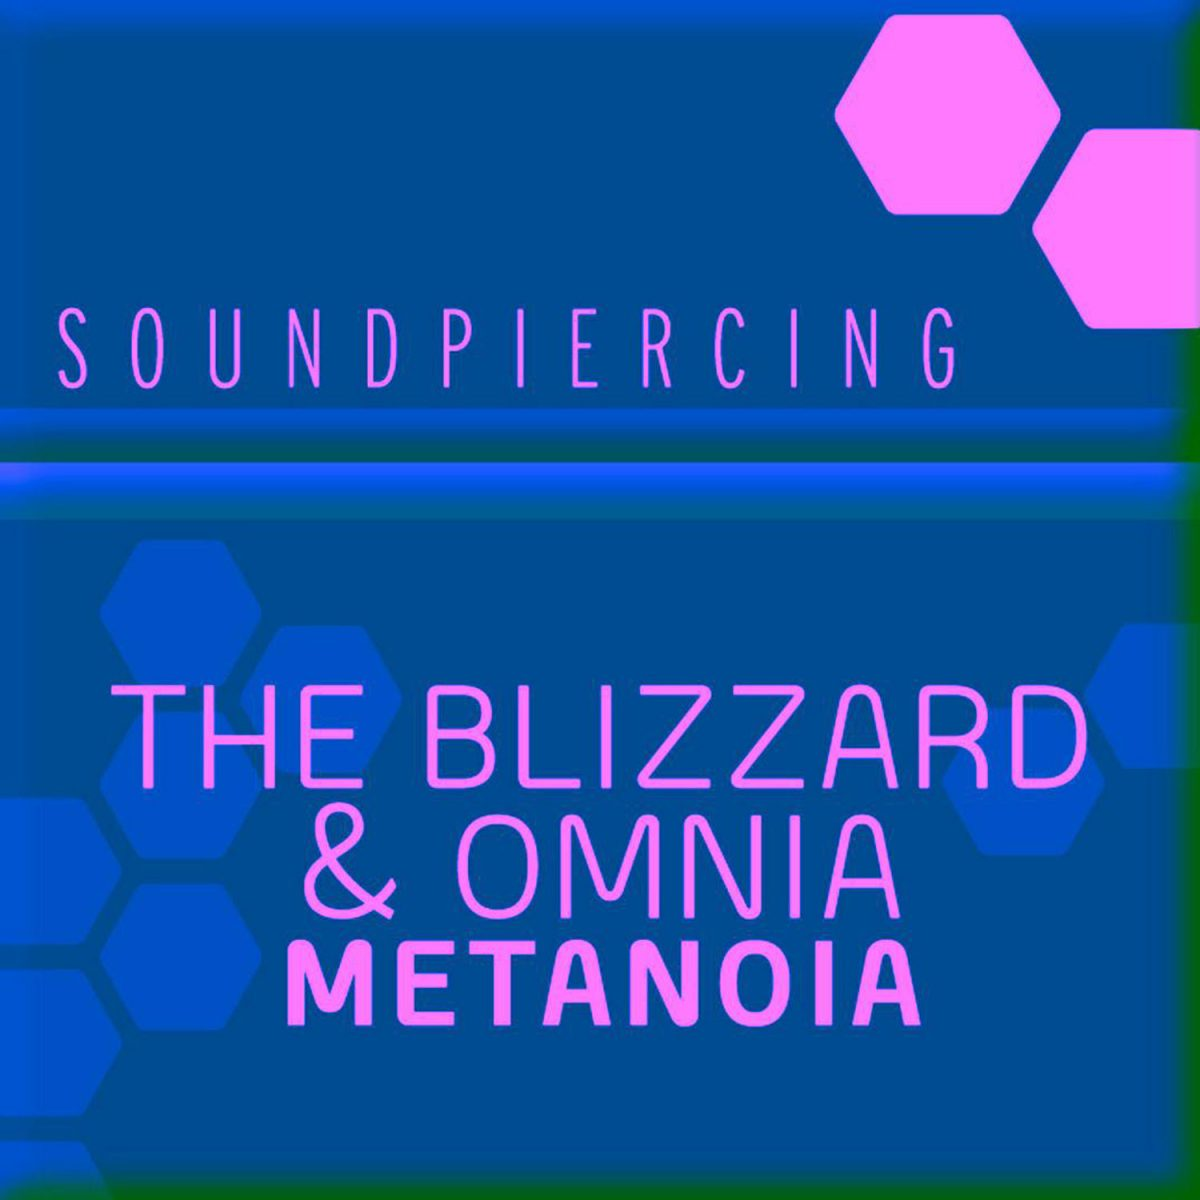 Metanoia - The Blizzard & Omnia - on Soundpiercing